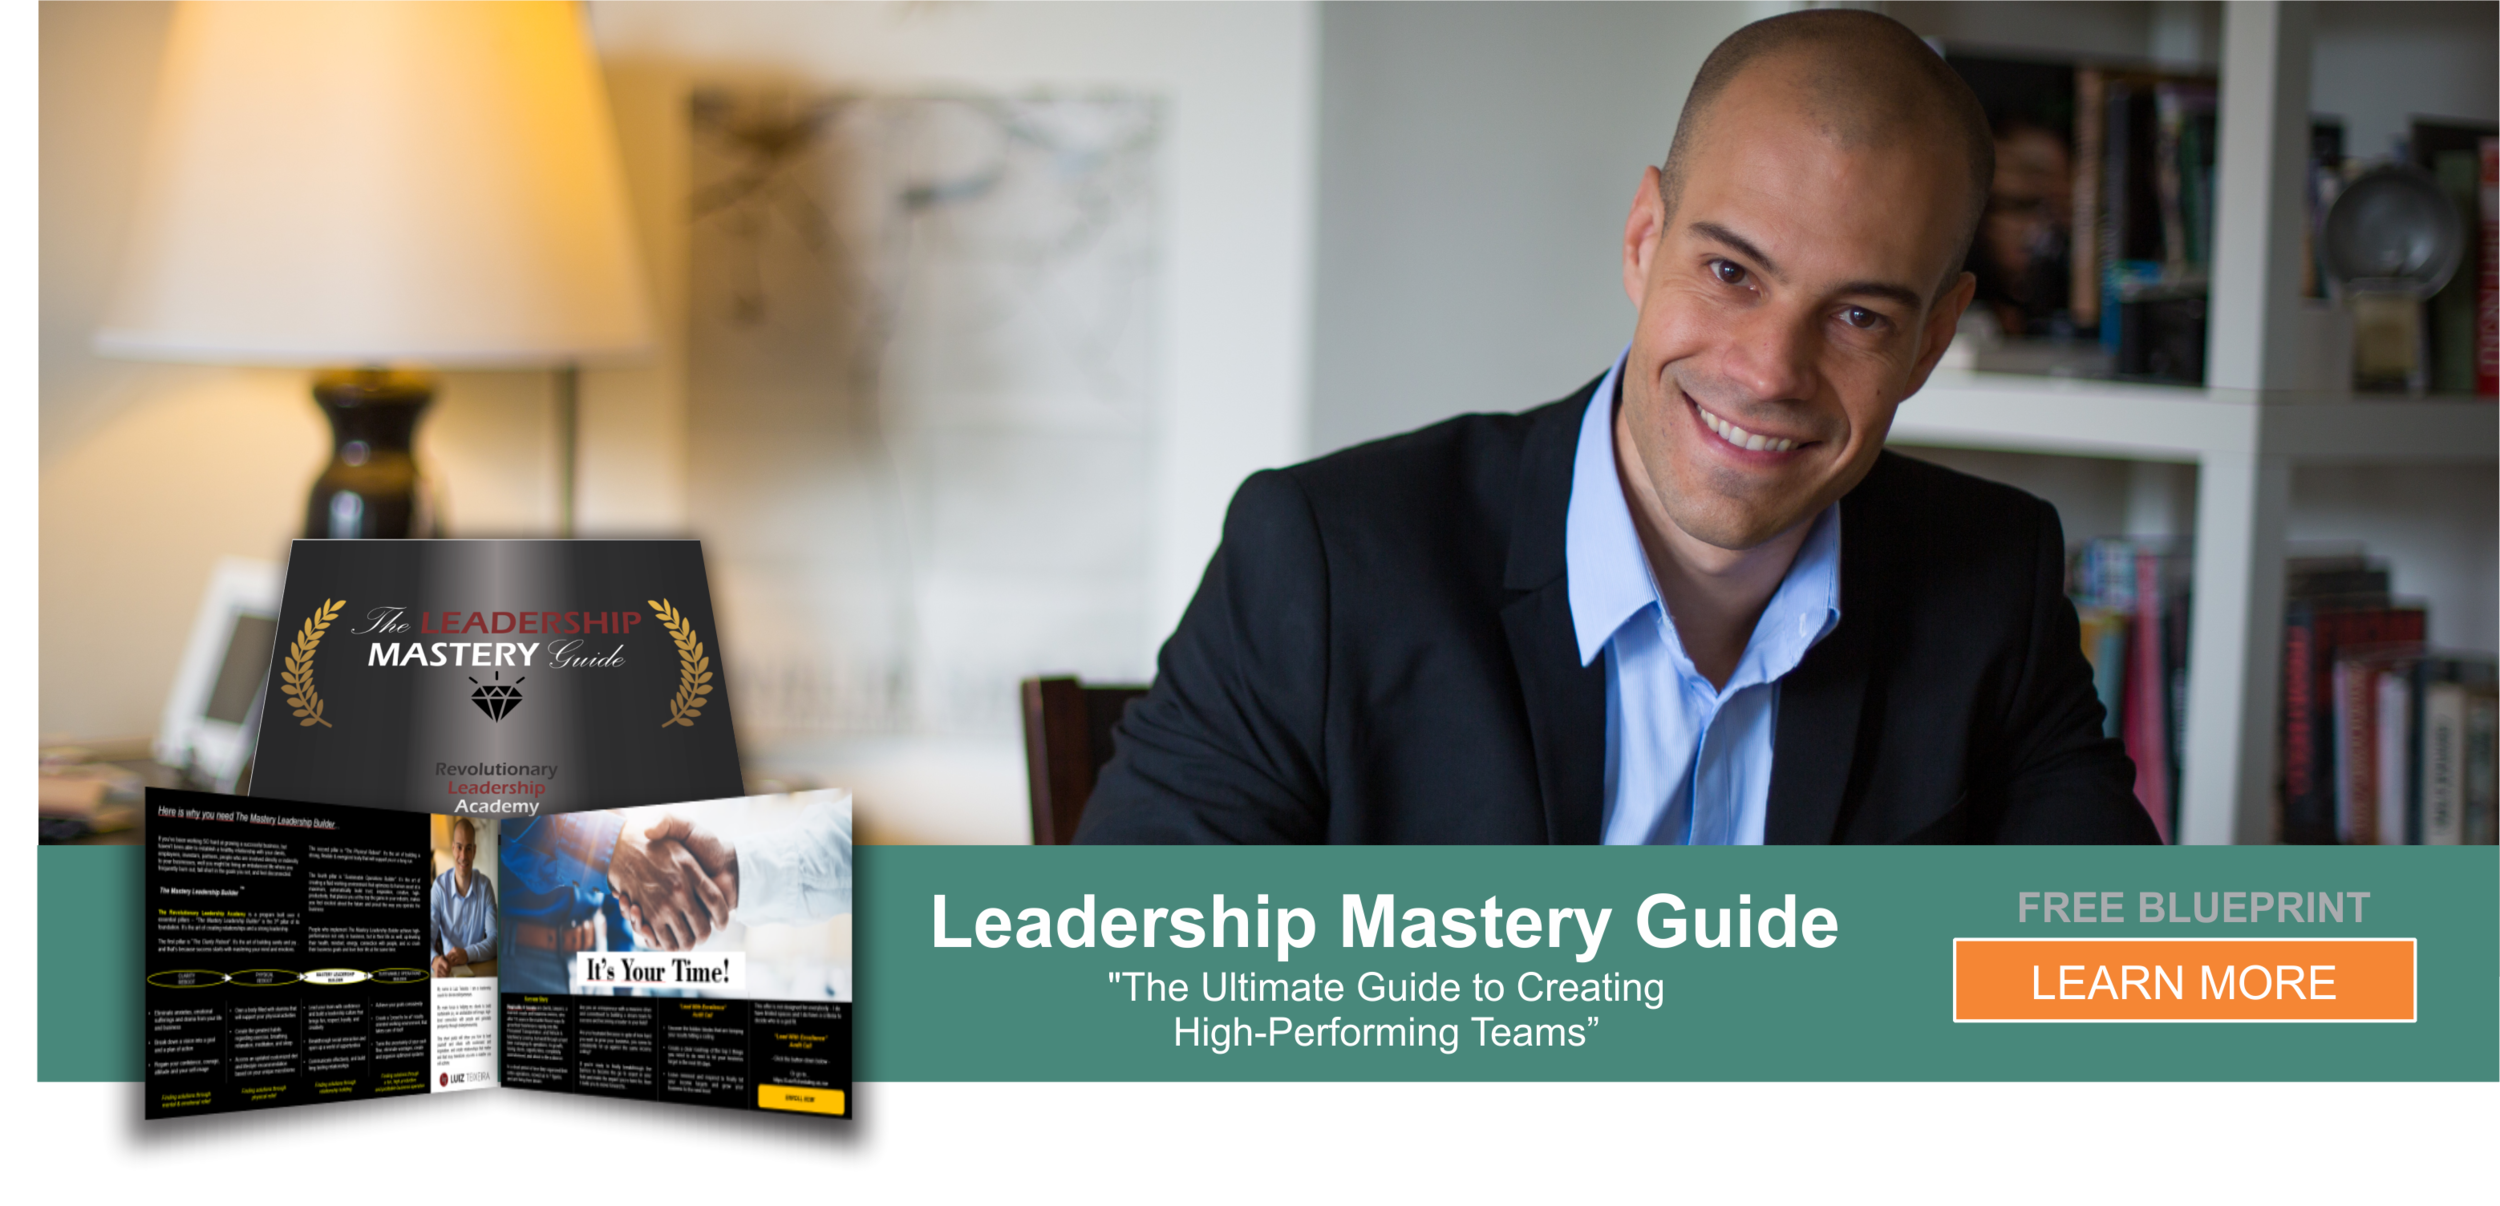 THE LEADERSHIP MASTERY GUIDE FRONT PAGE 01.png